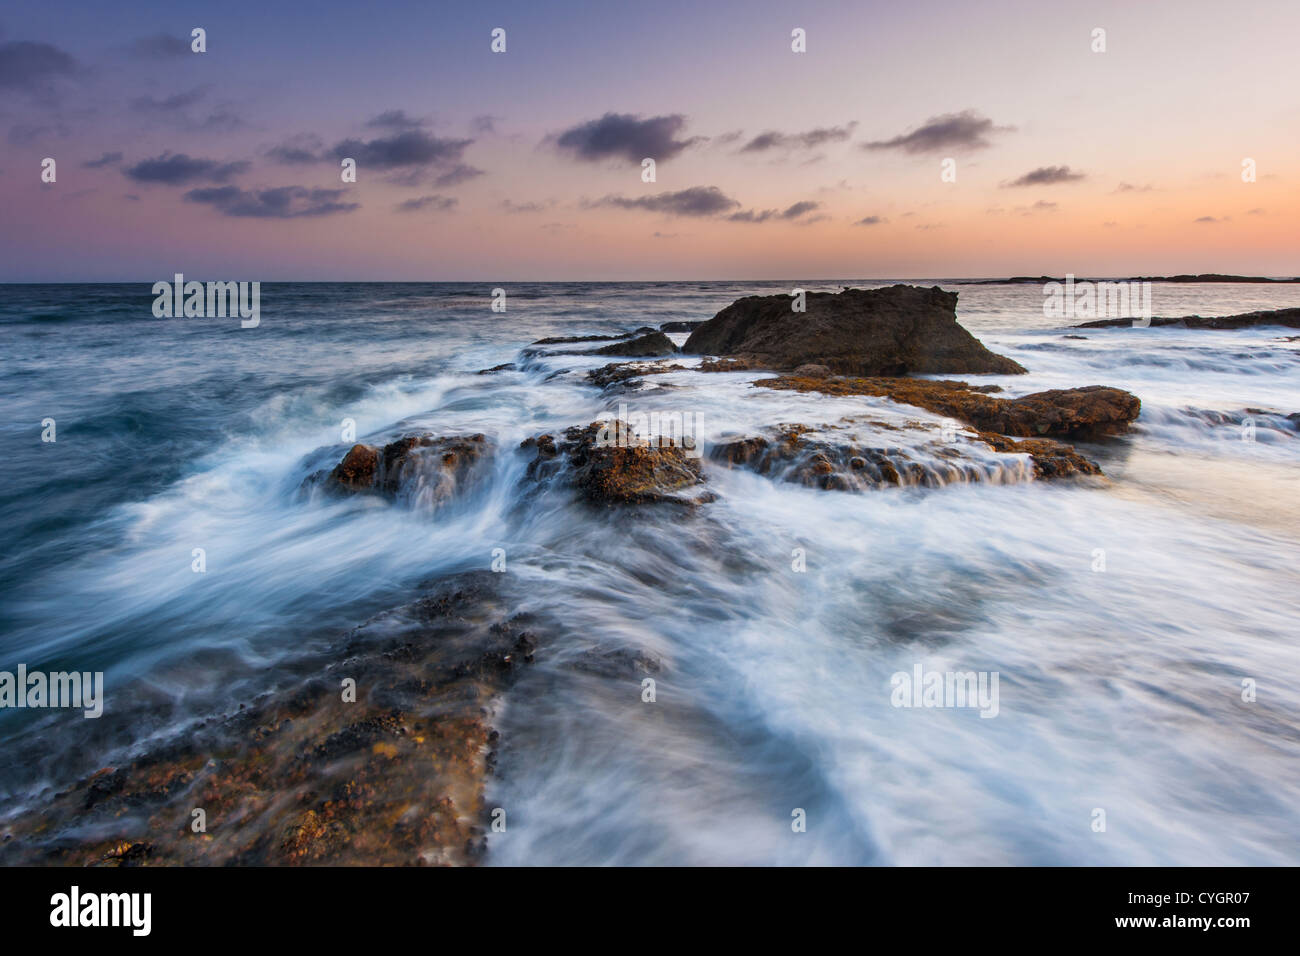 wave movement on rock beach in california - Stock Image